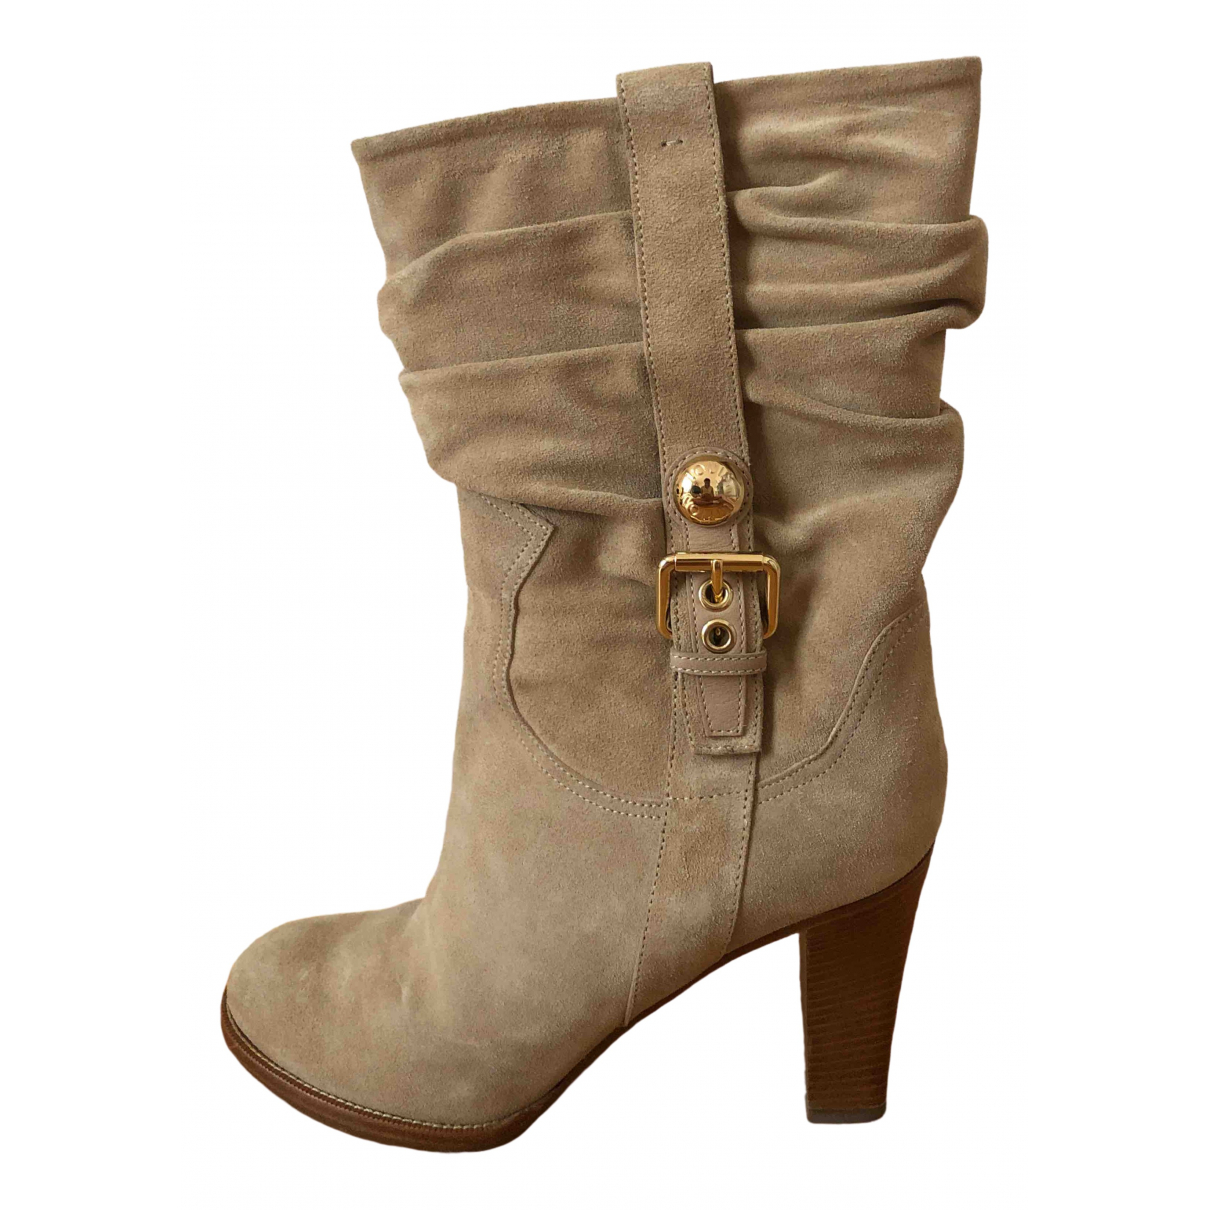 Louis Vuitton \N Beige Suede Boots for Women 38.5 EU